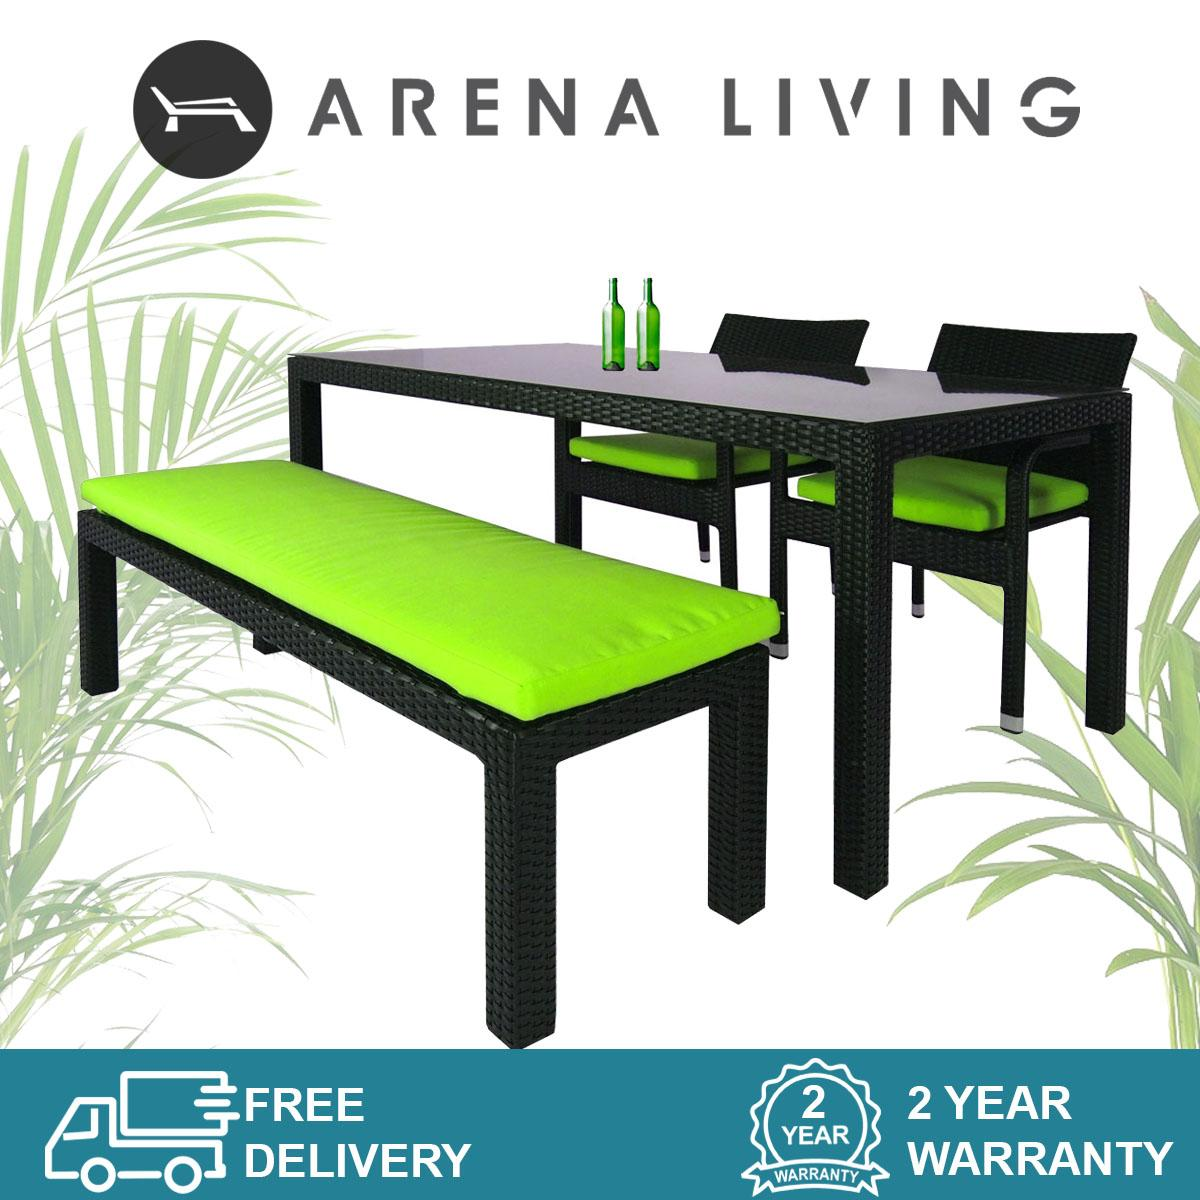 Addison 4 Pcs Dining Set, Green Cushions, Outdoor Furniture by Arena Living